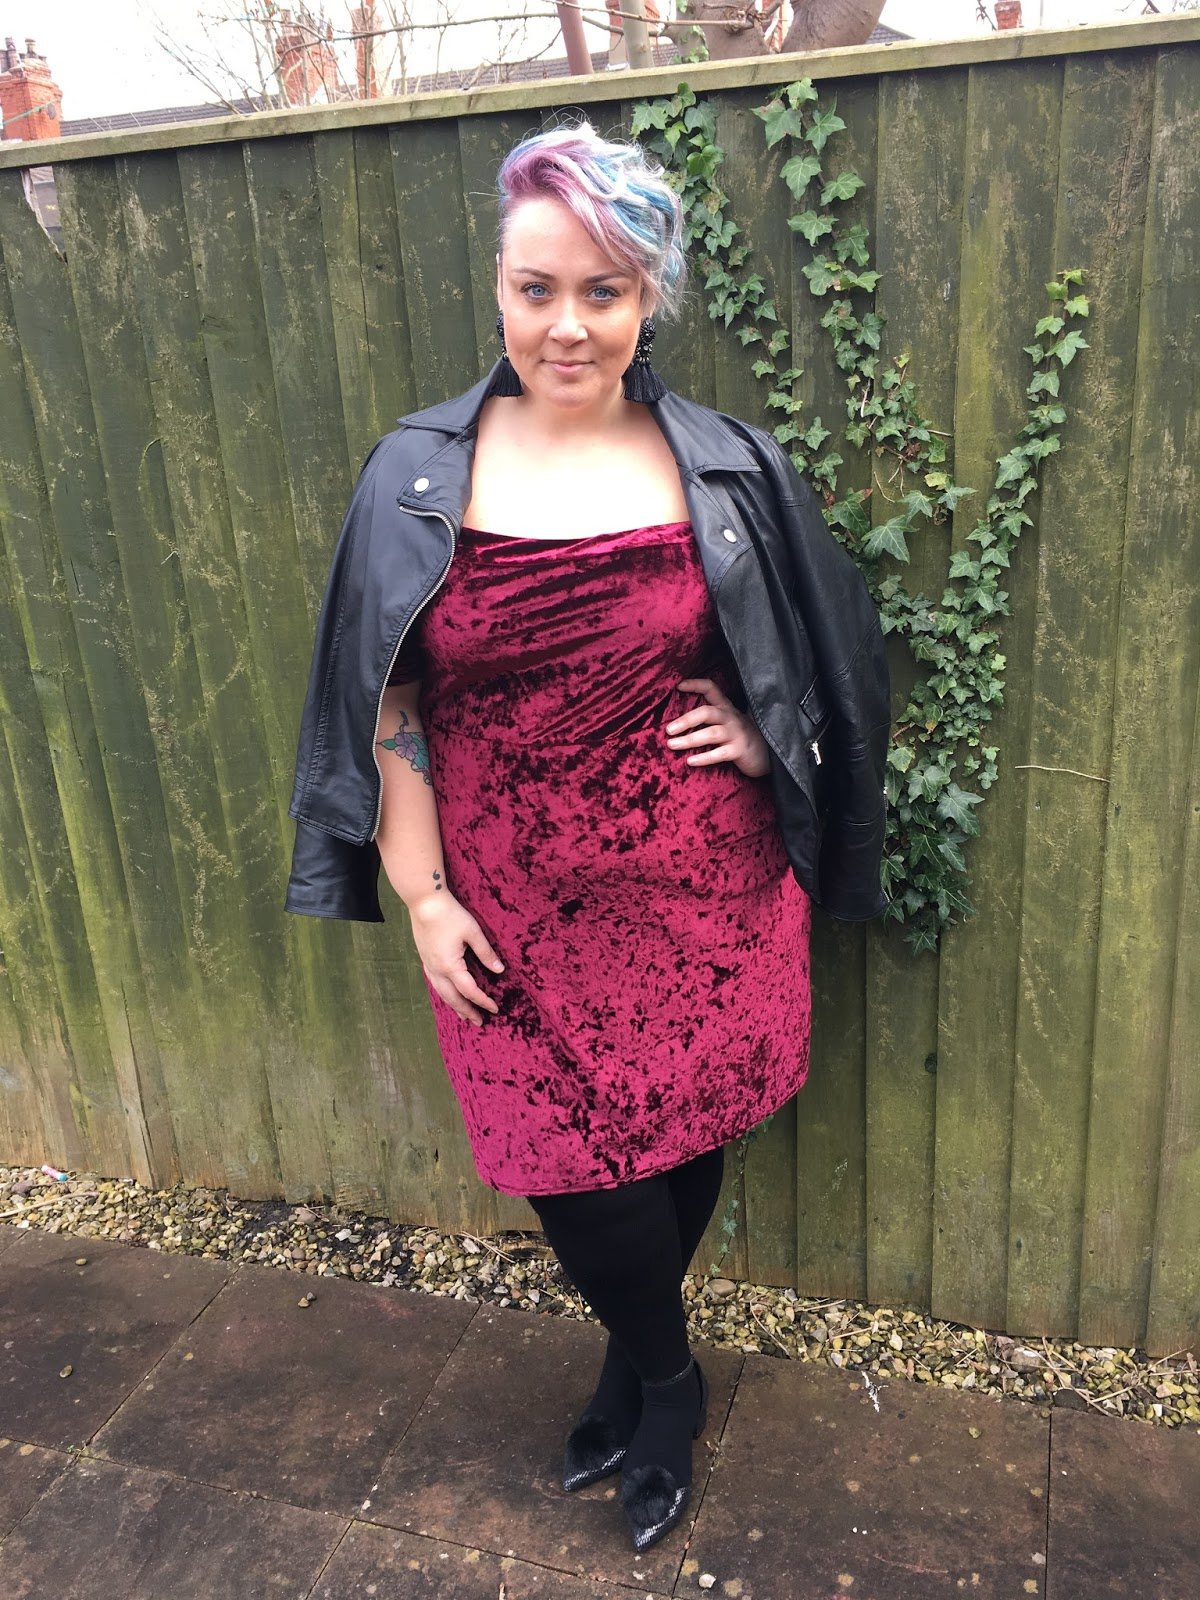 ea4056bf058b0 Style: Velvet Perfection with Pink Clove - Becky Barnes Blog | Plus ...